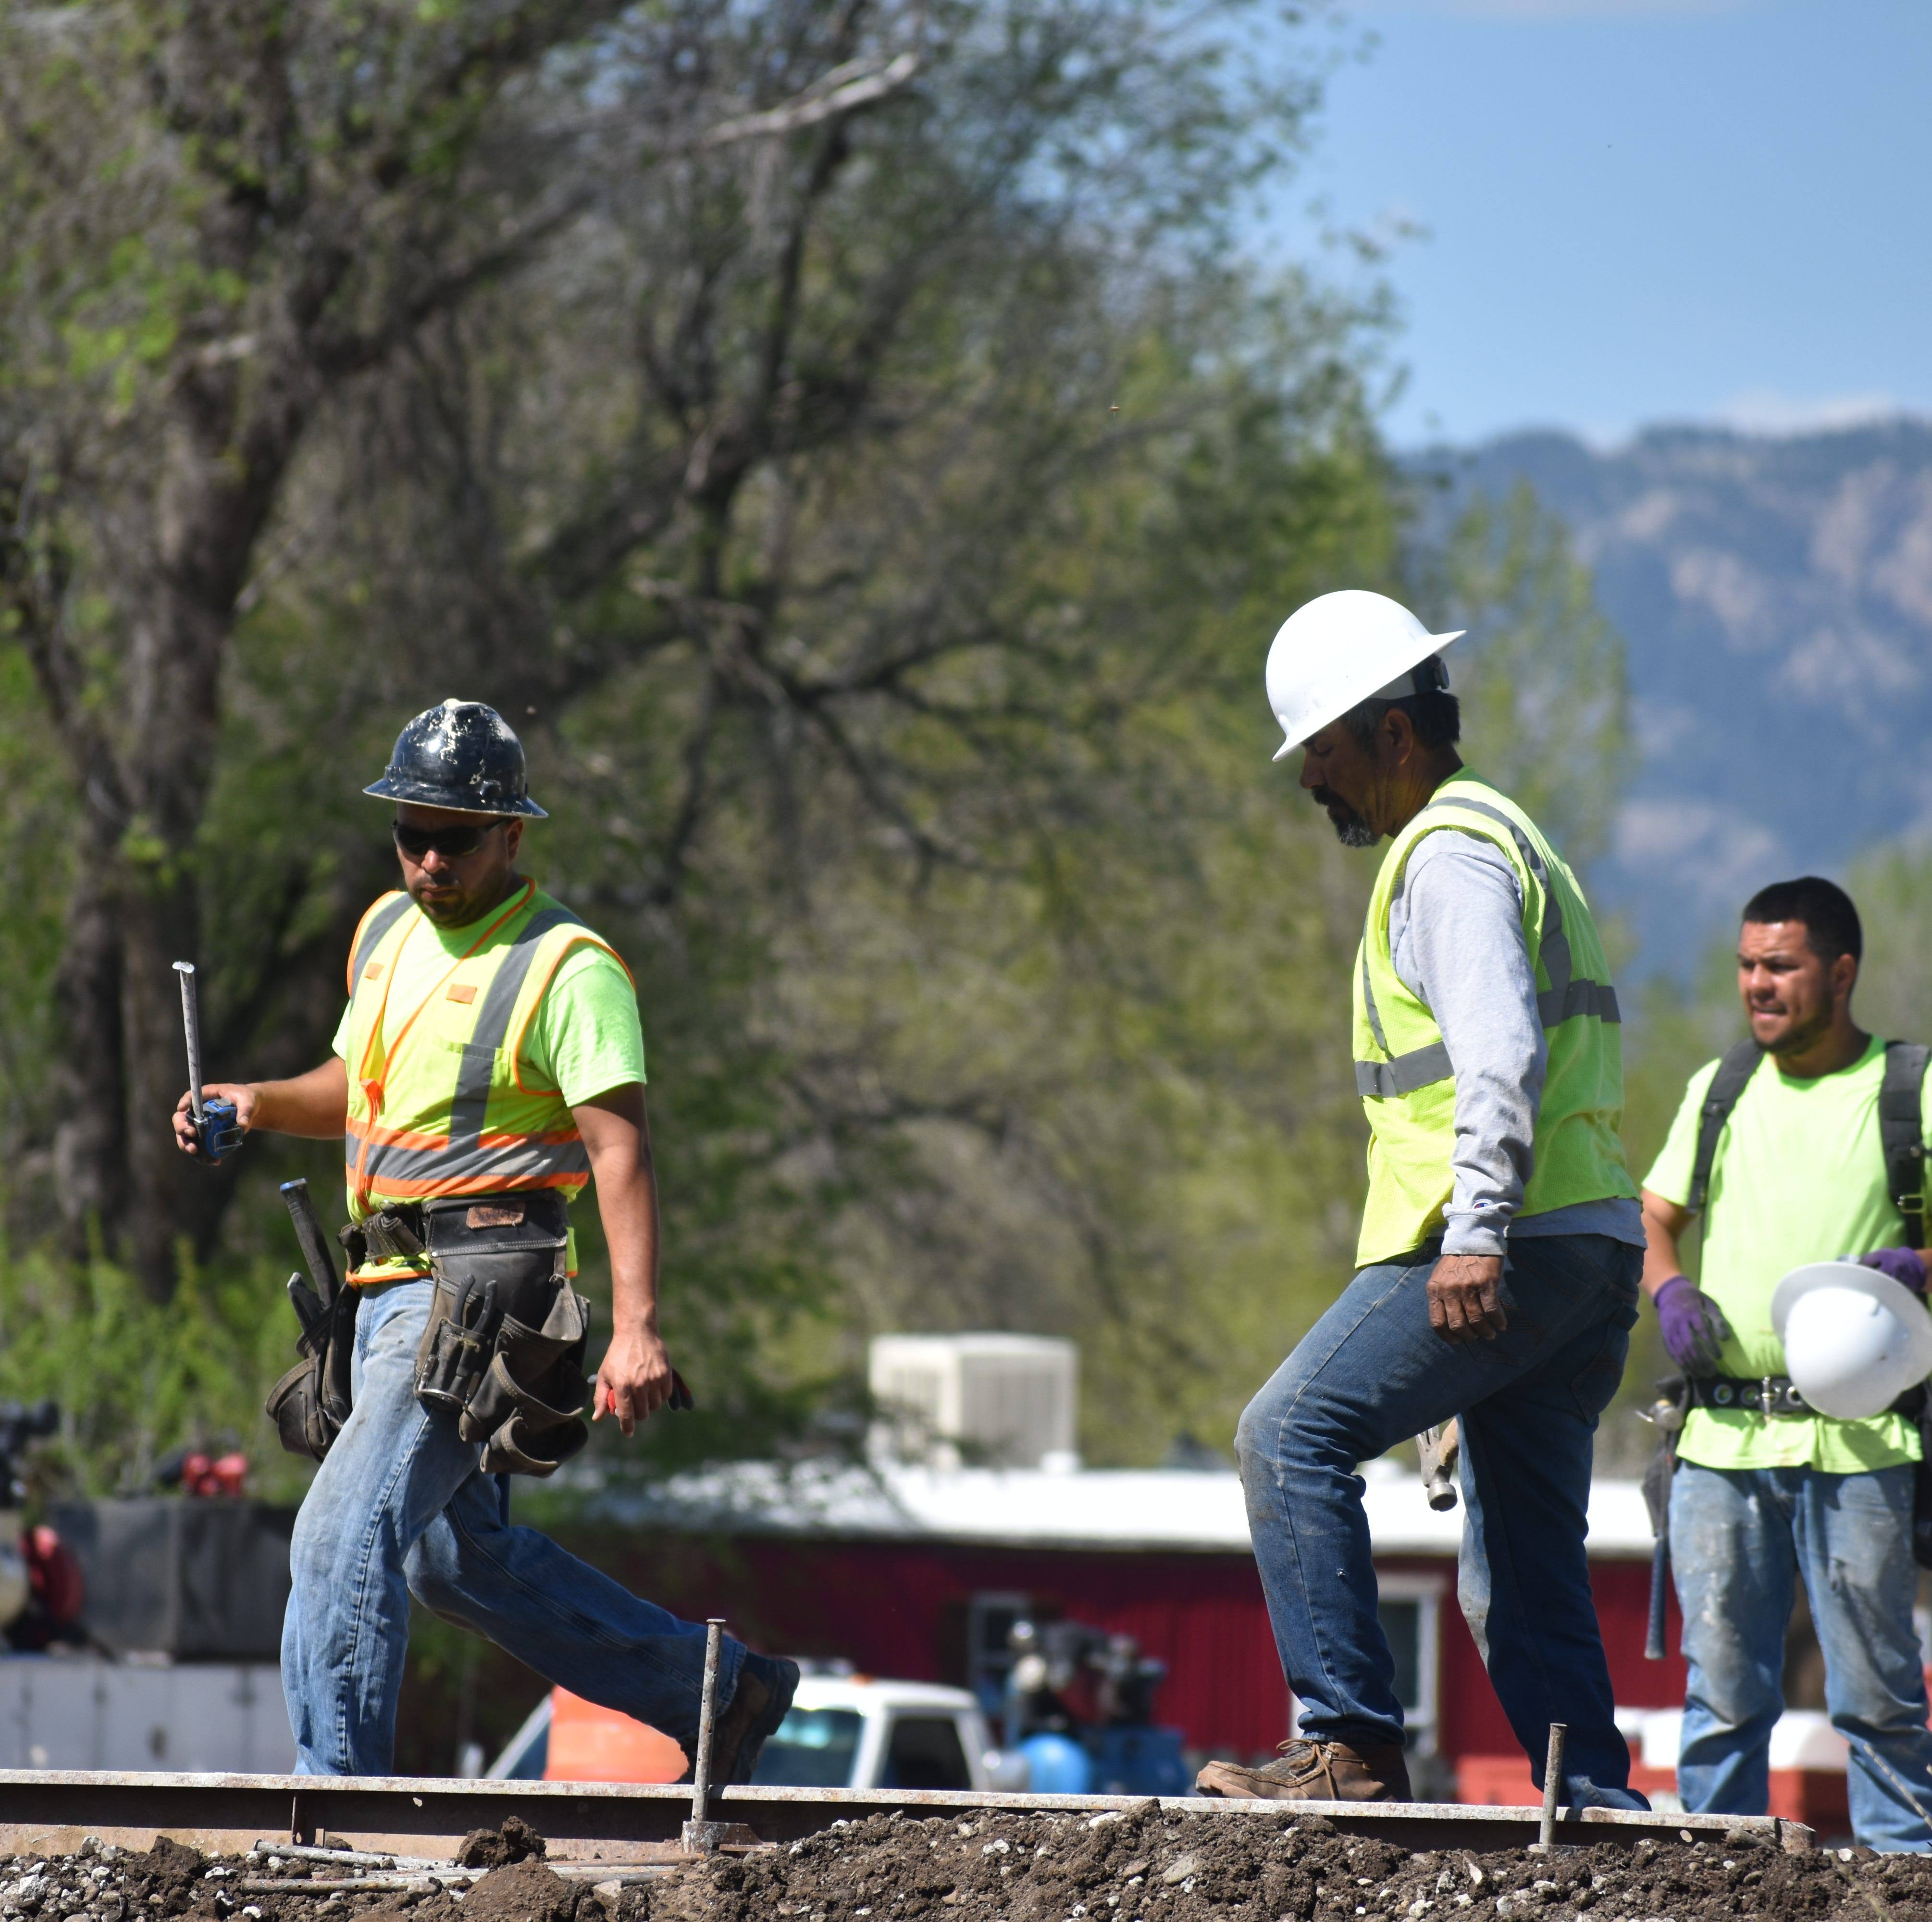 U.S. Highway 287 project is almost over after more than three years